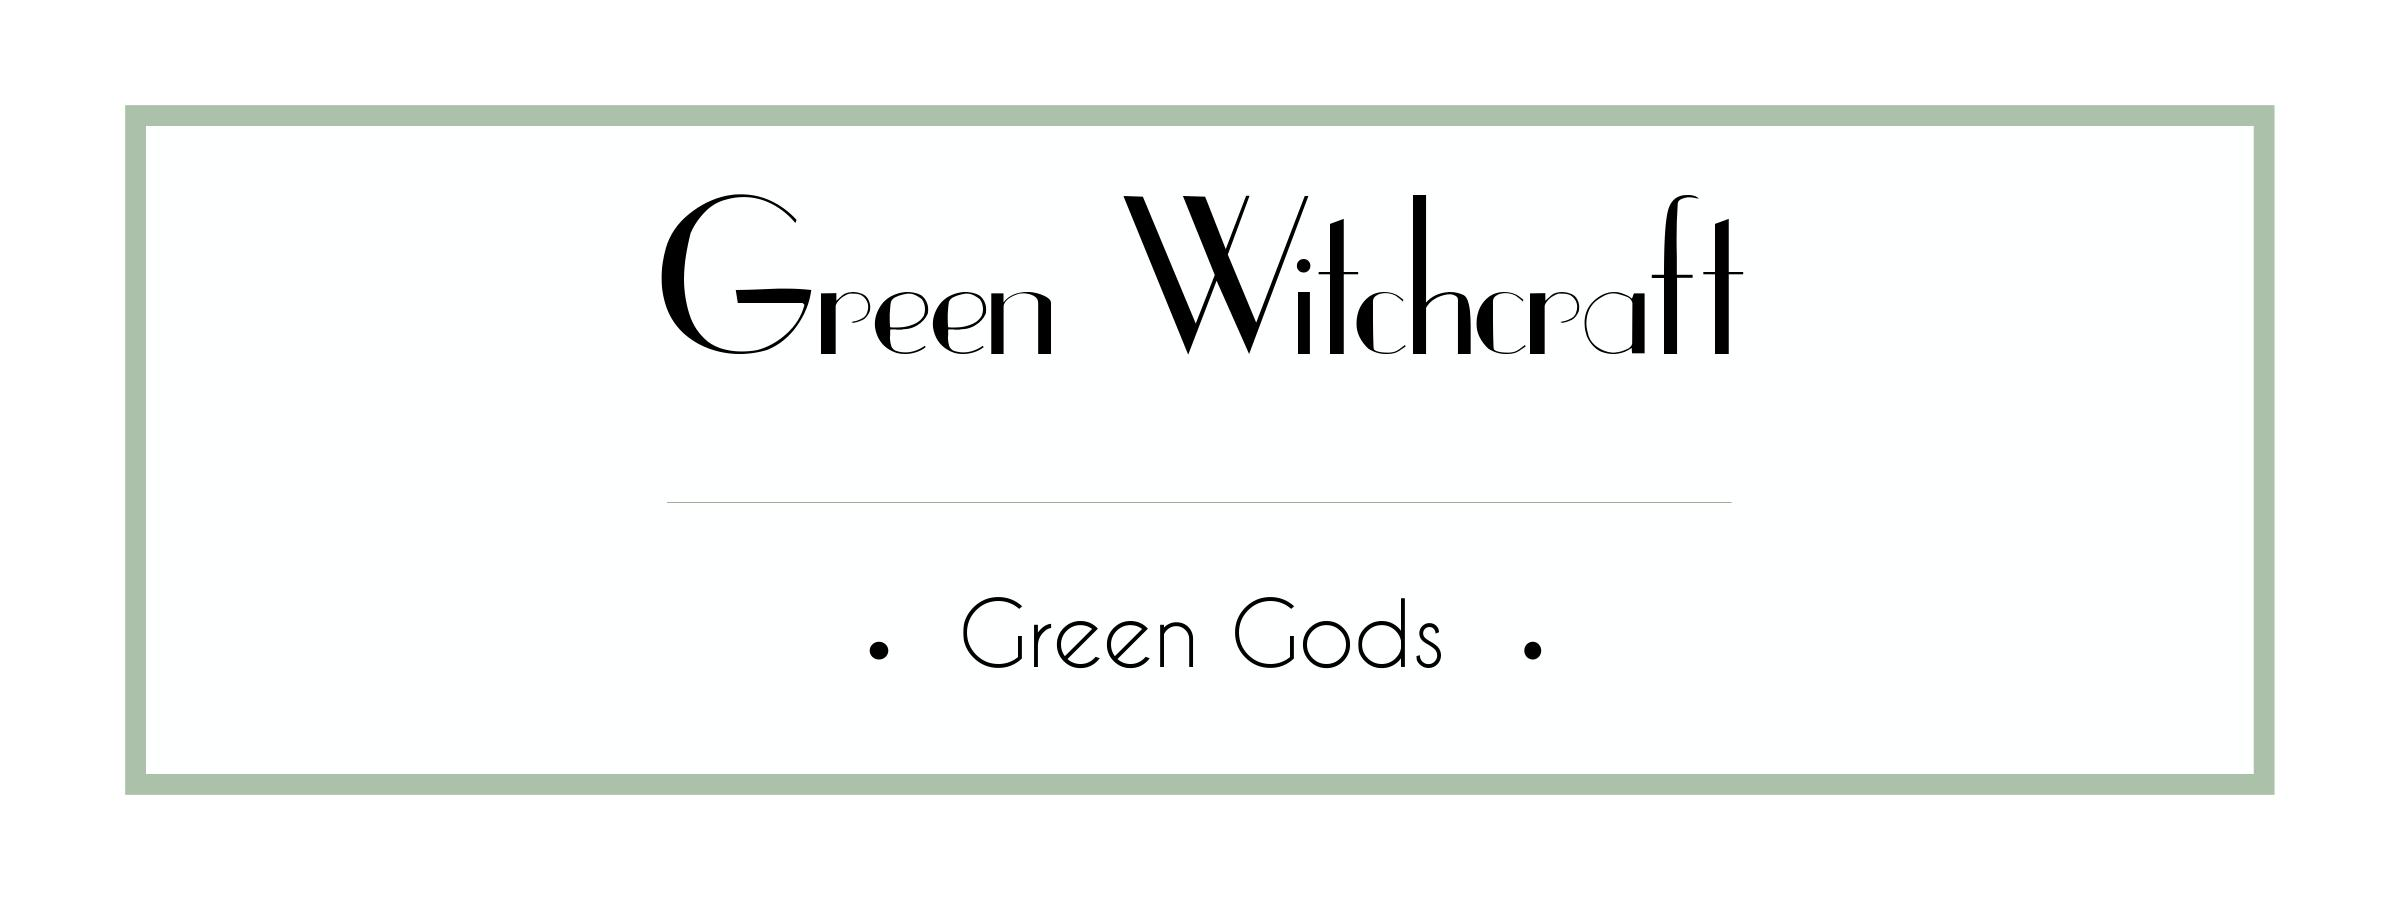 Green Witchcraft Course - Green Gods